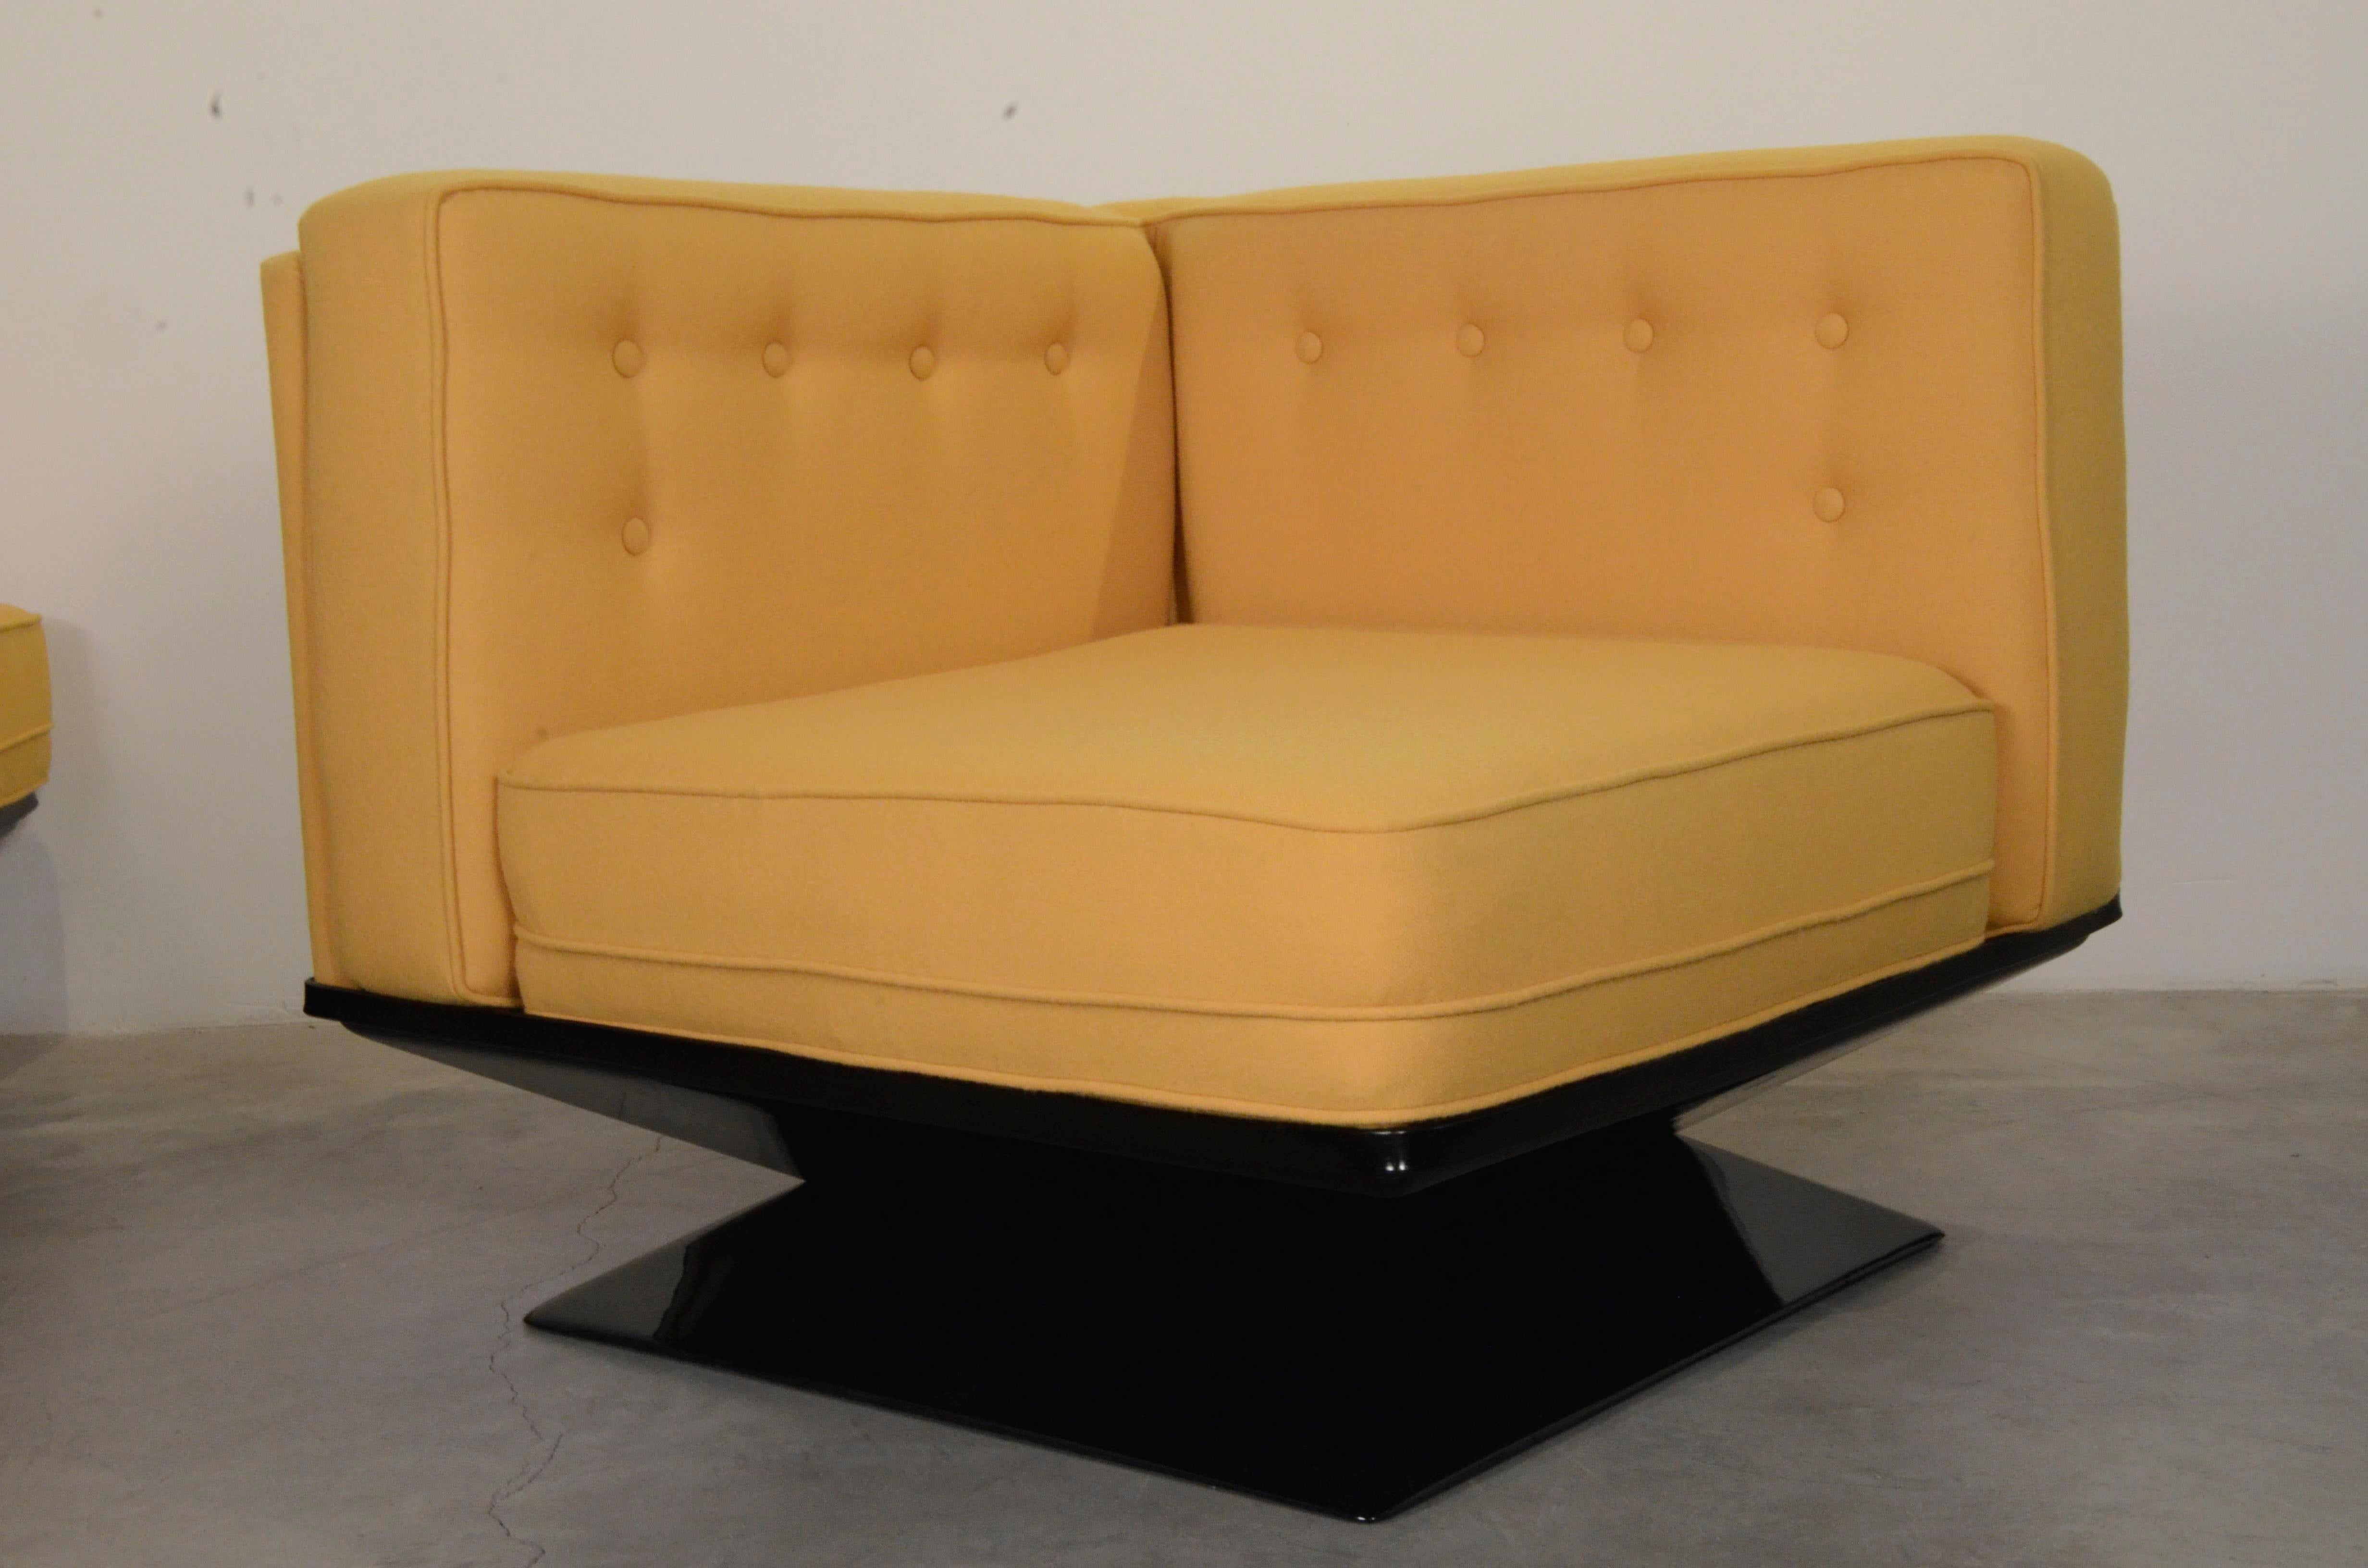 Upholstered in a New Yellow Knoll Wool MIM Roma (Ico Parisi) Sectional Sofa by  sc 1 st  DECASO : yellow sectional - Sectionals, Sofas & Couches